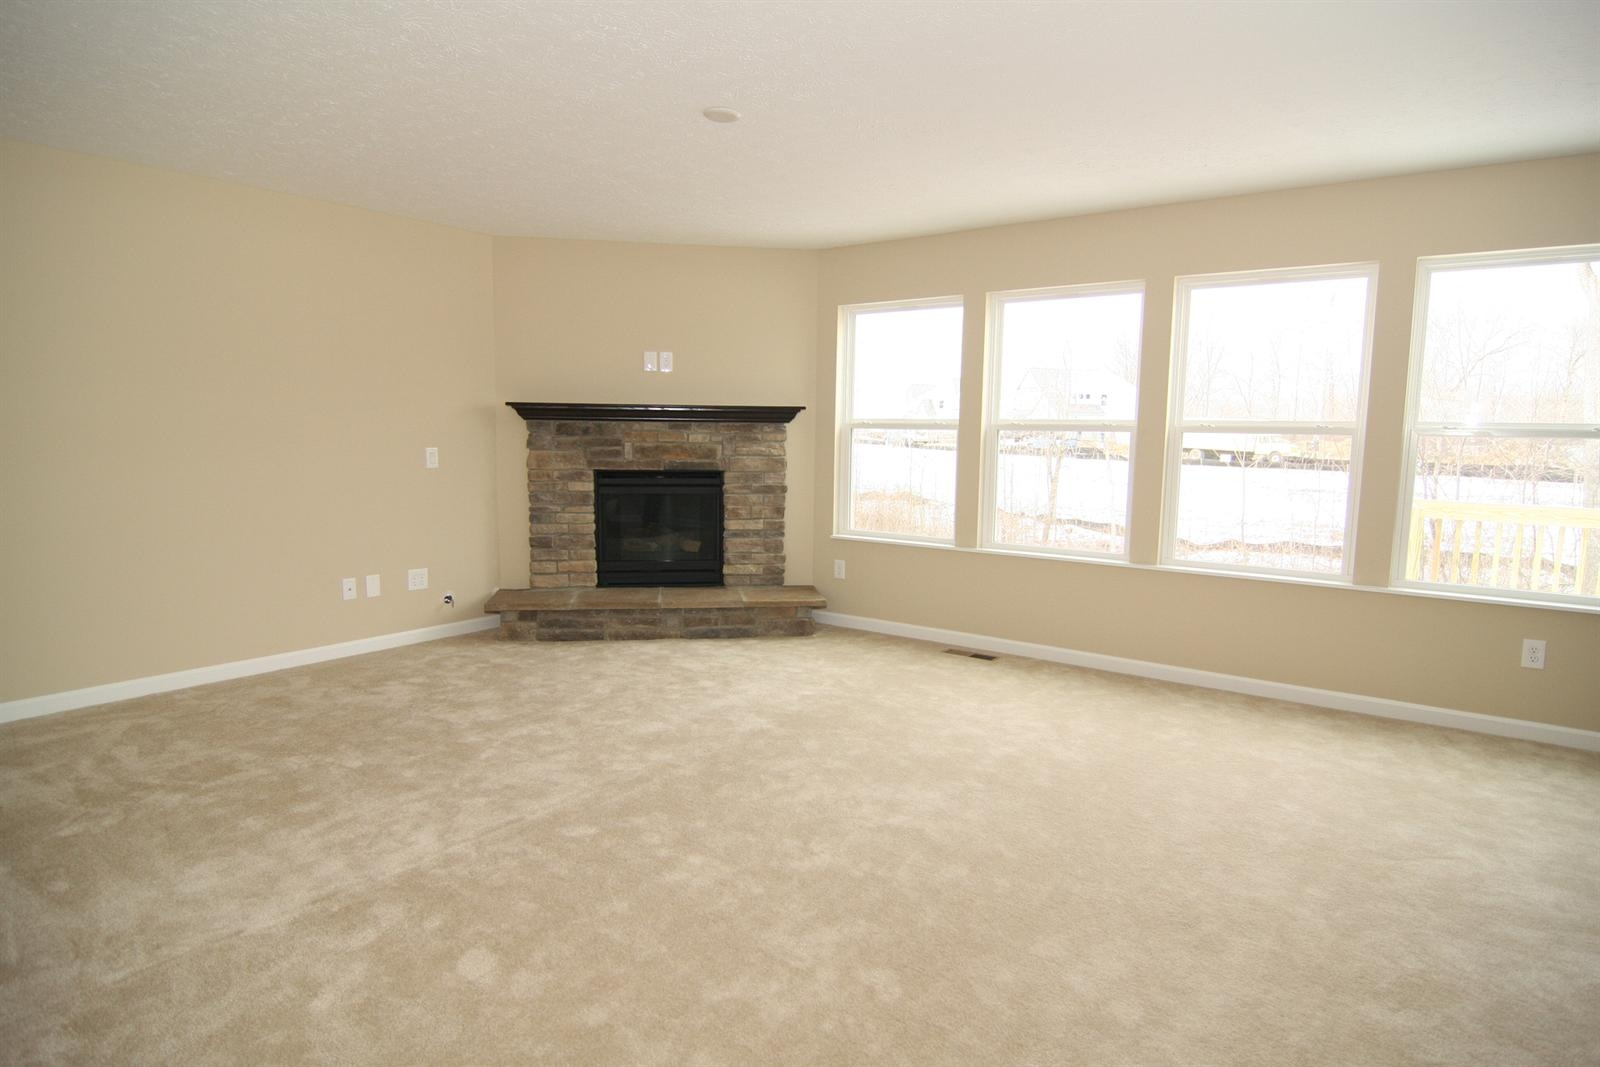 Real Estate Photography - 4852 Corydon Ln, Indianapolis, IN, 46239 - Location 4